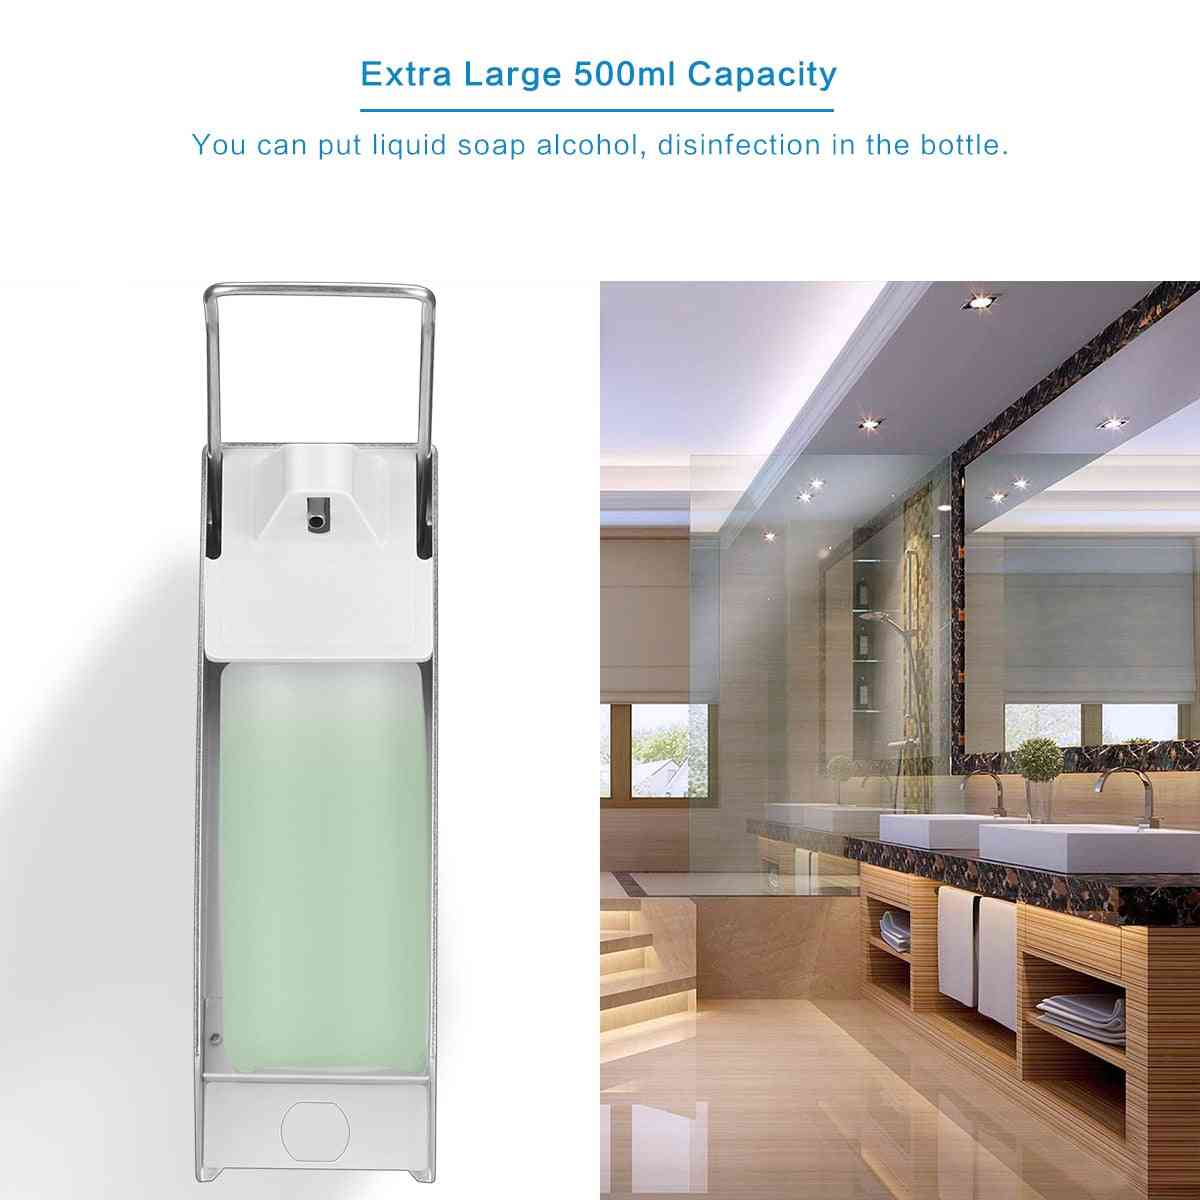 Wall Mount Soap, Sanitizer, Lotion Dispenser With Manual Pump For Bathrooms And Hospitals